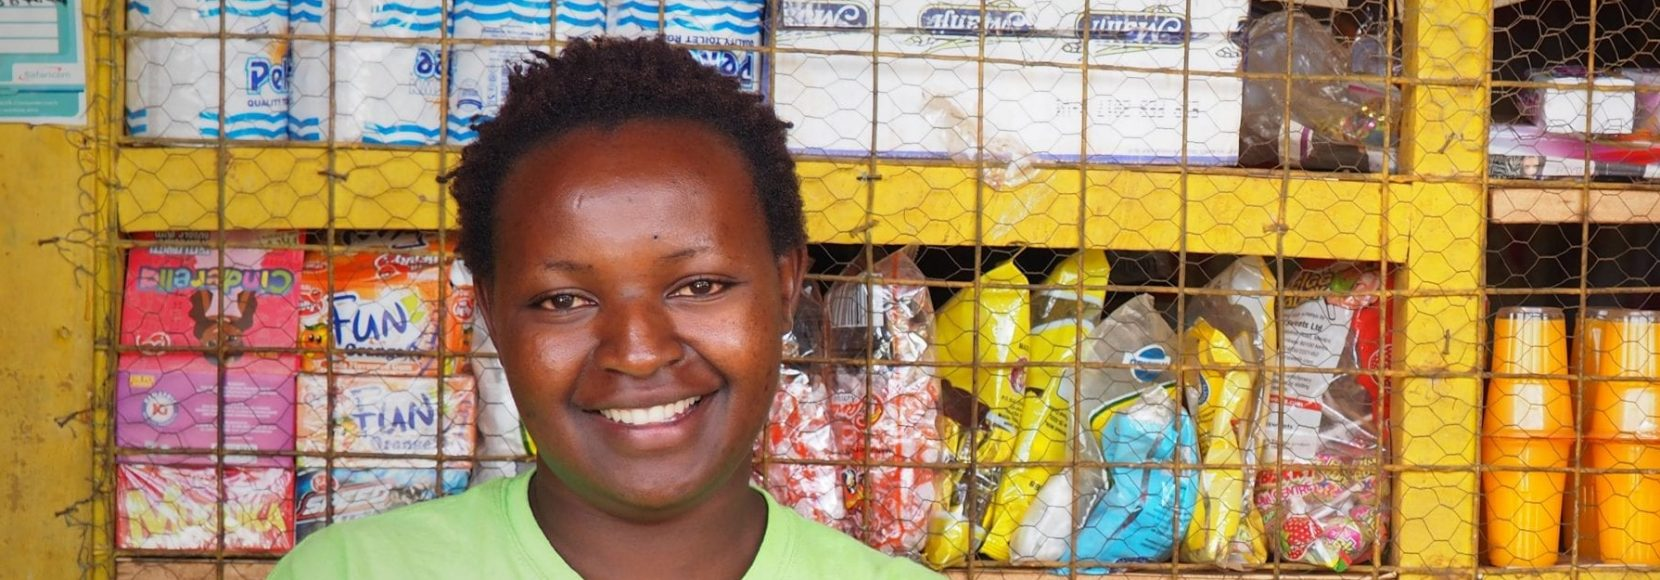 Woman smiling in front of food in Kenya